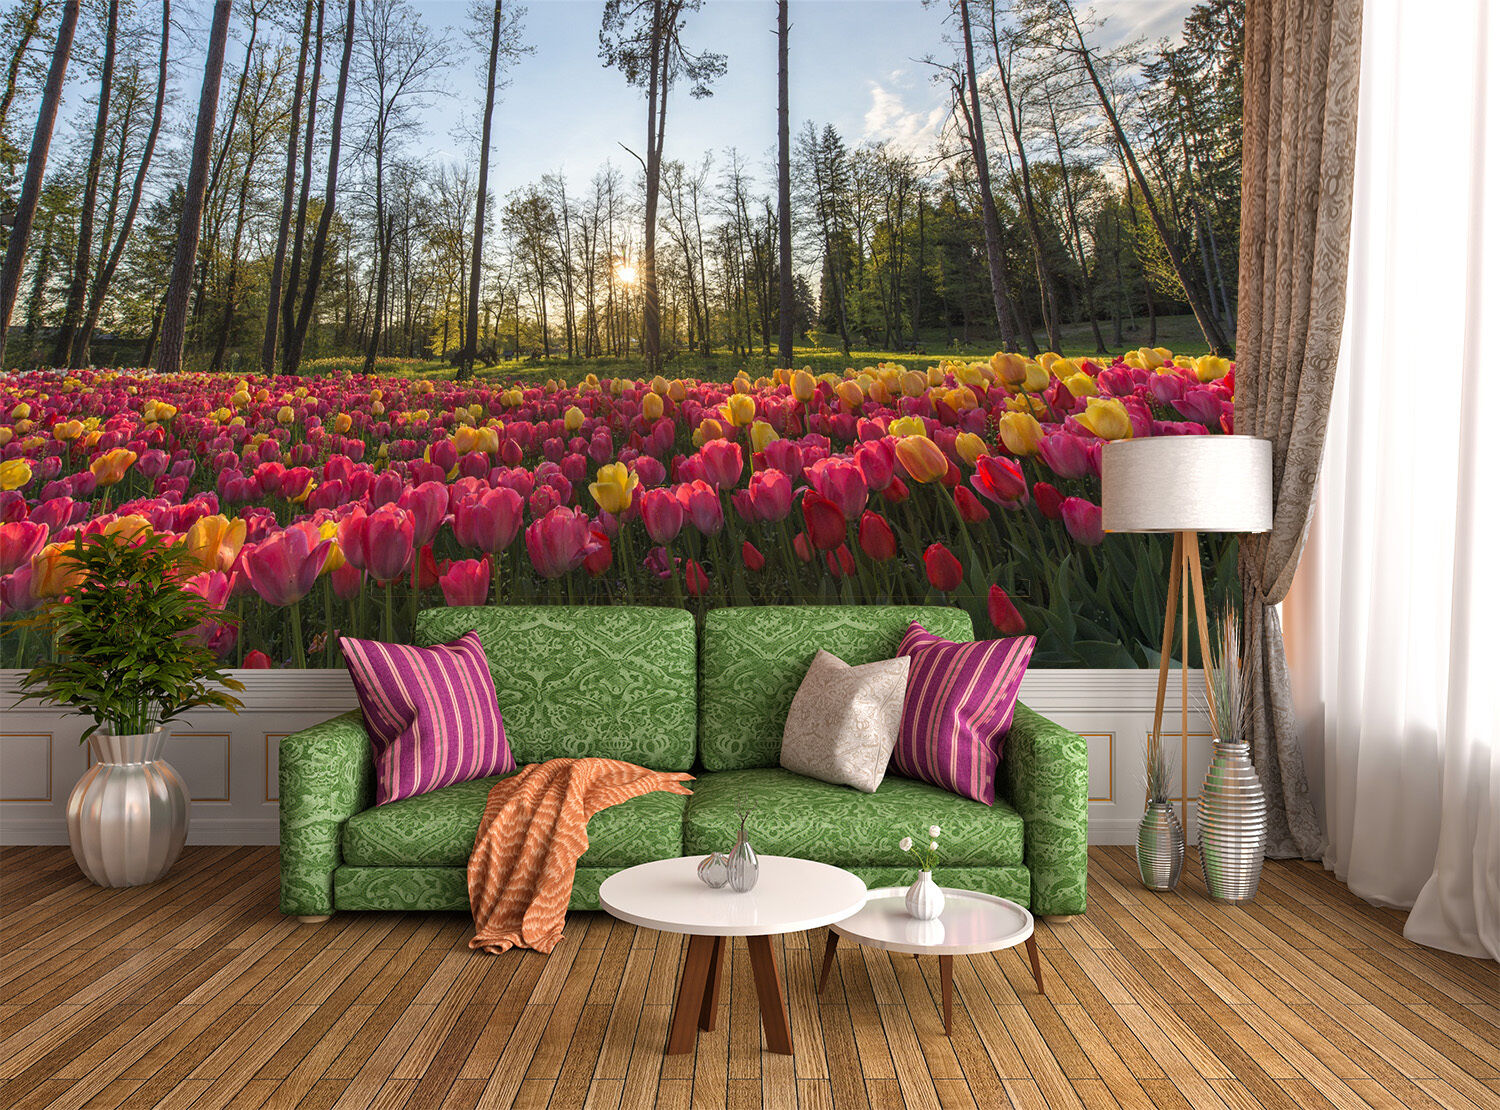 3D Tulip flower field forest Wall Paper Print Decal Decal Decal Wall Deco Indoor wall Mural 56fe35